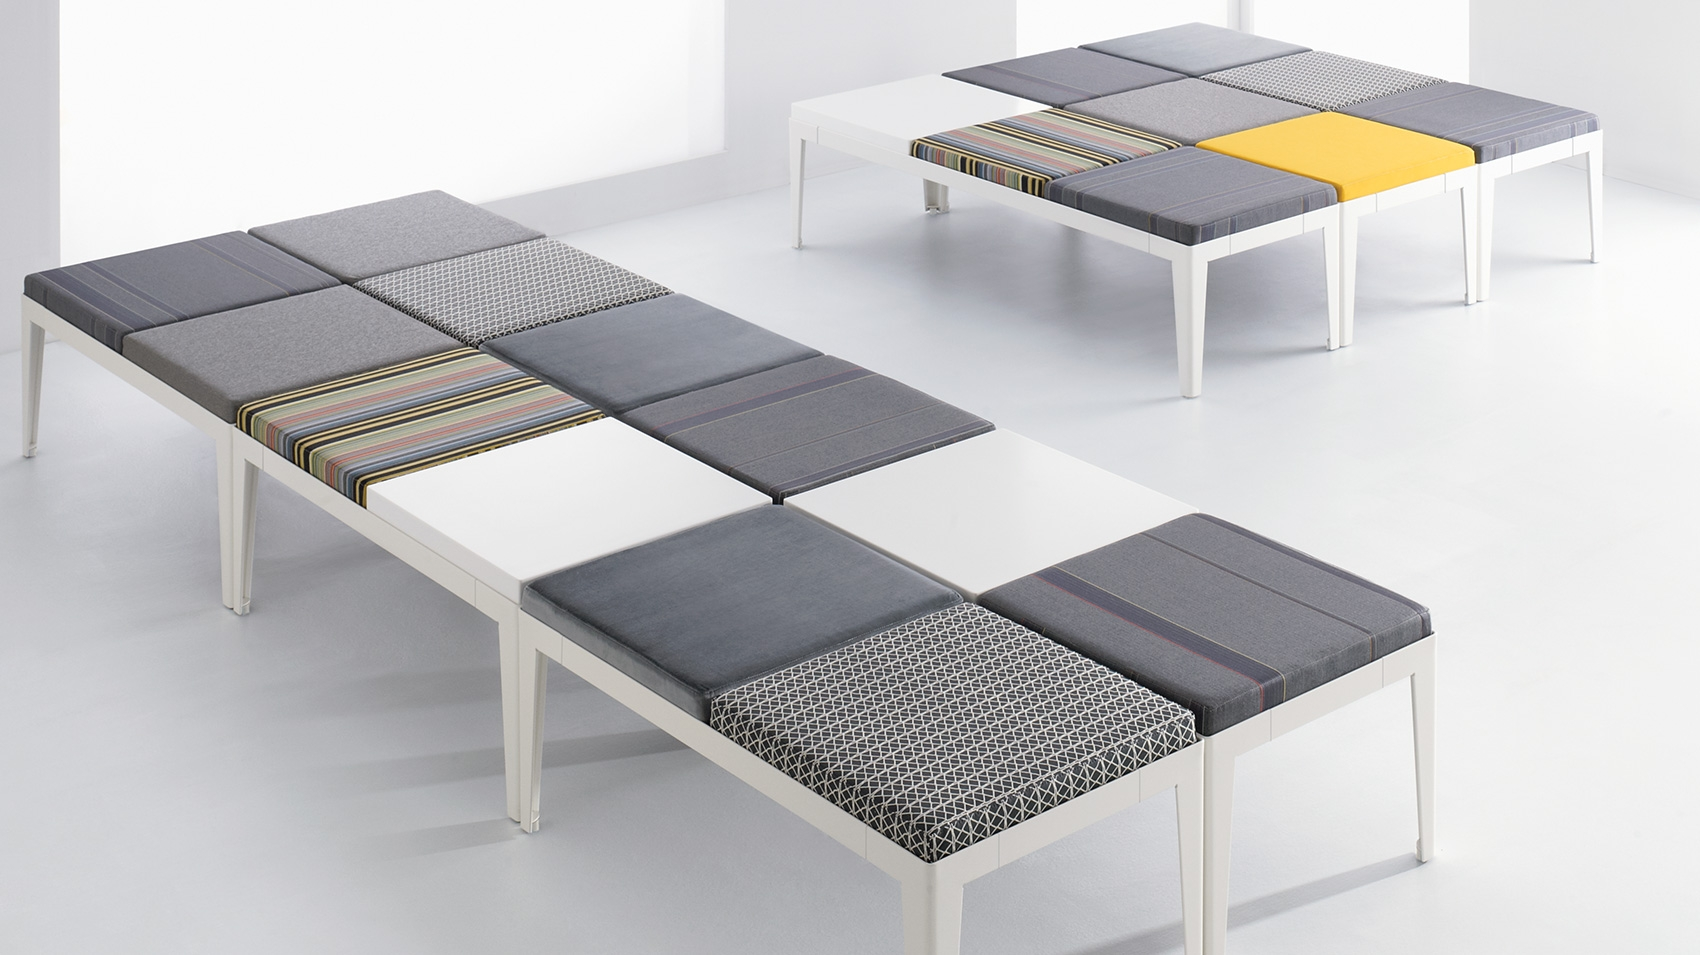 B nda is pure and simple modern lounge furniture that delivers  configurability for sensible and adaptable social  public spaces. B nda   OFS Brands